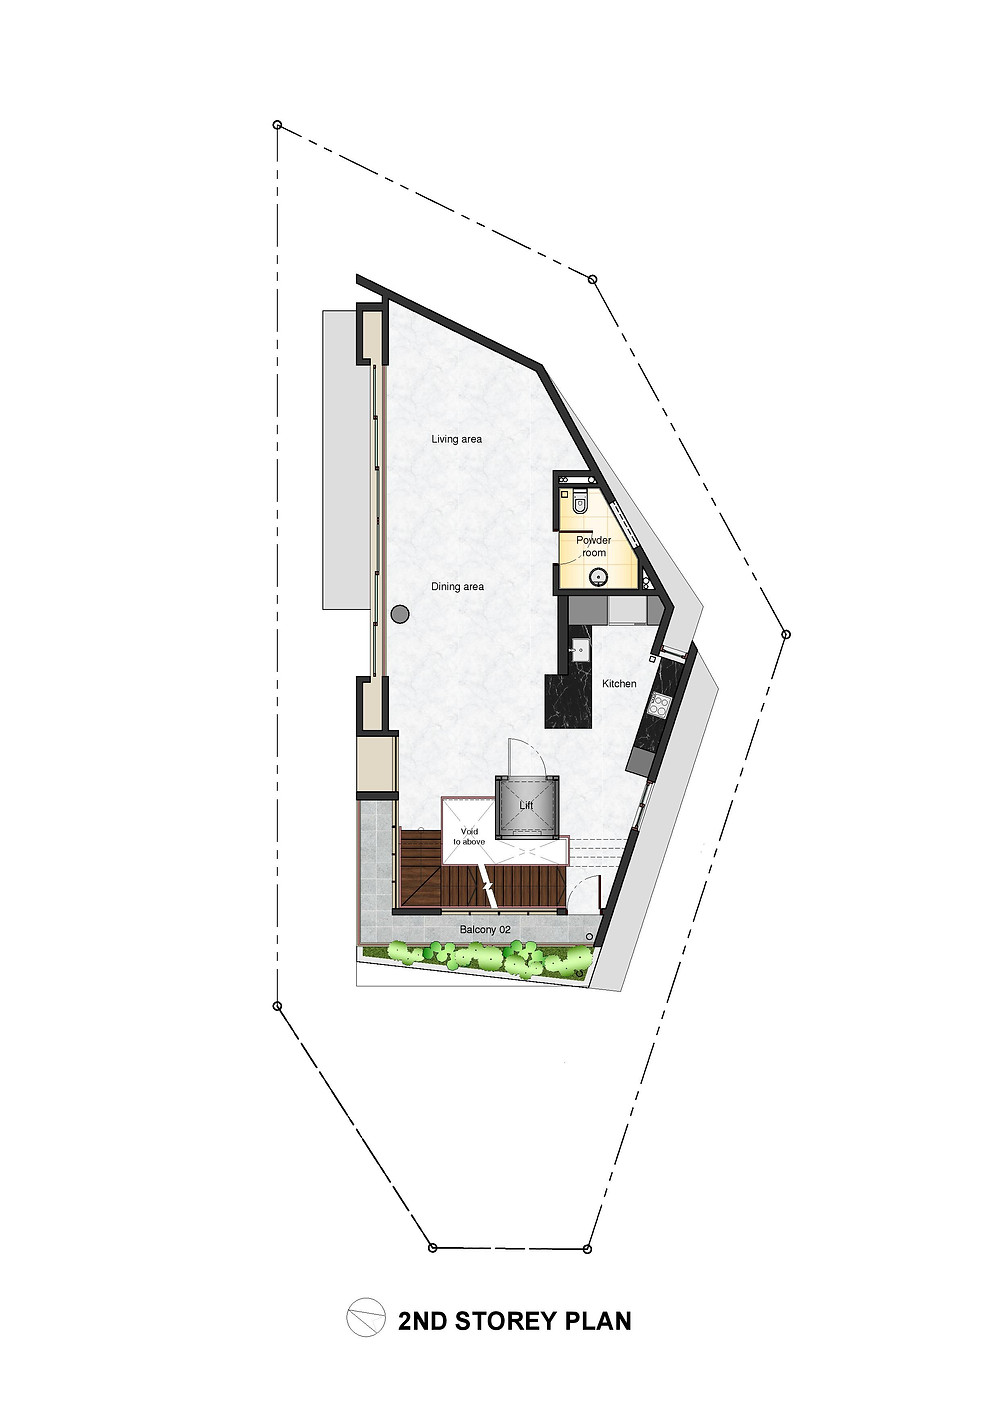 Princess @ 480 Guillemard Road 2nd Storey Plan